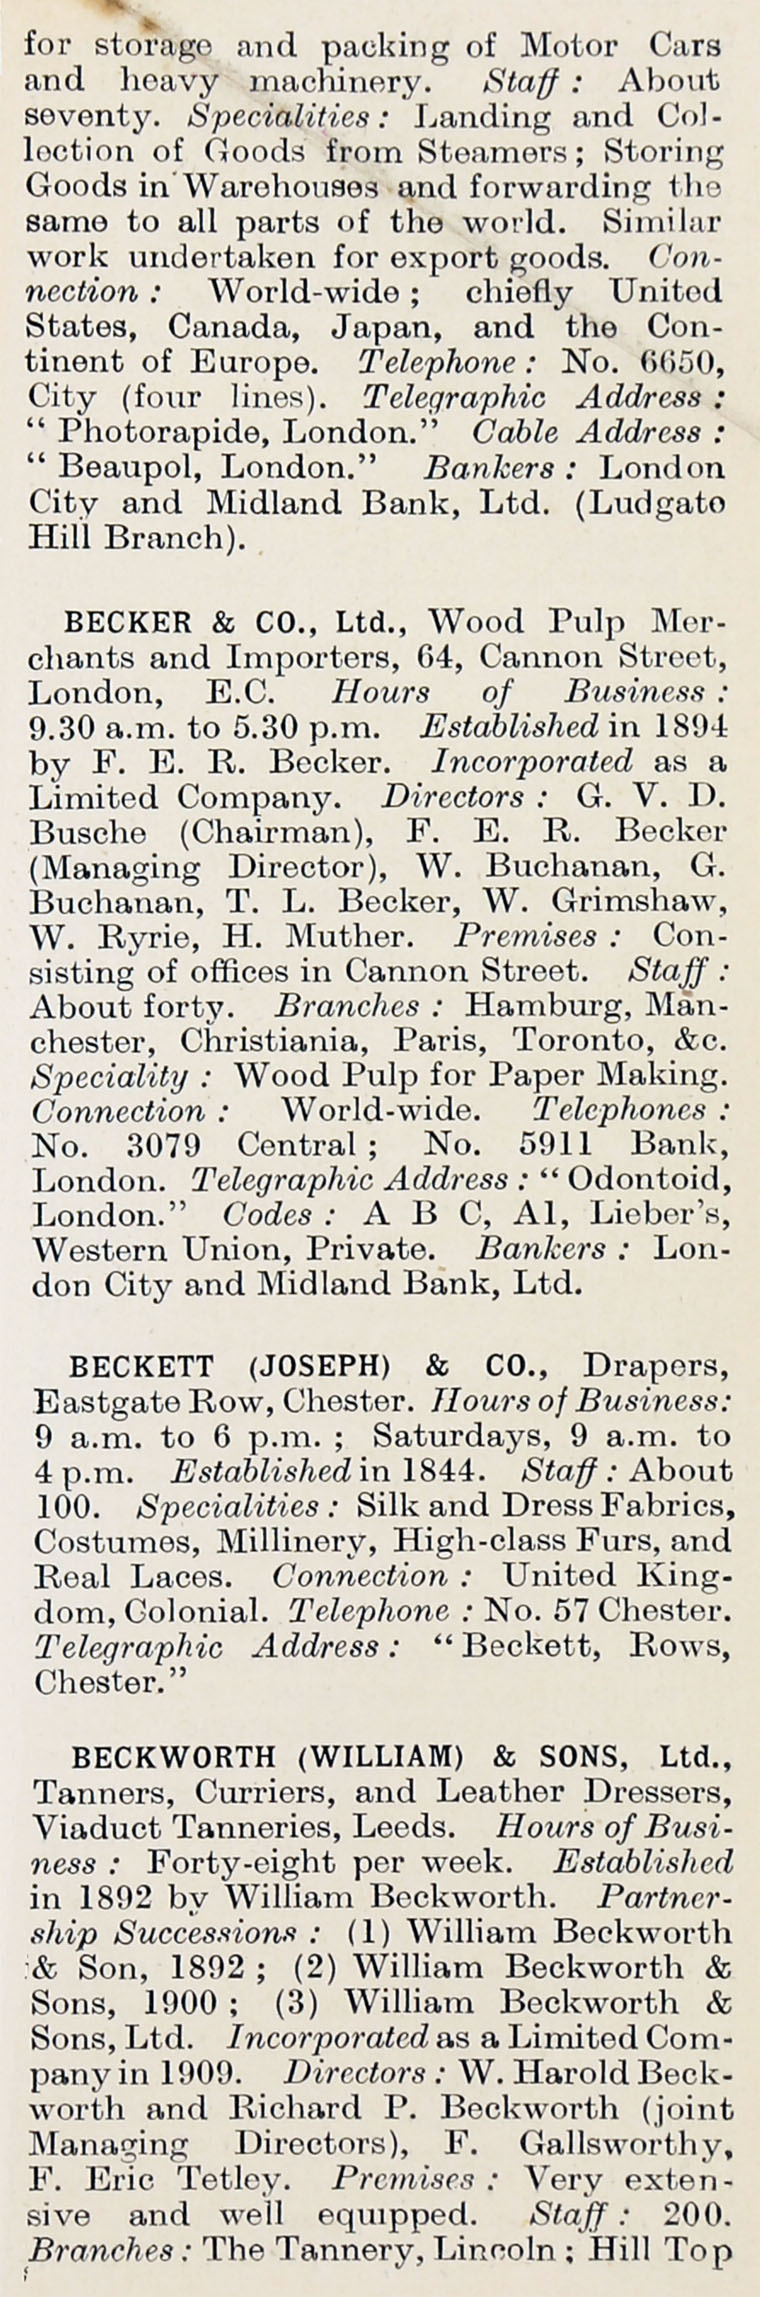 1914 Who's Who in Business: Company B Graces Guide